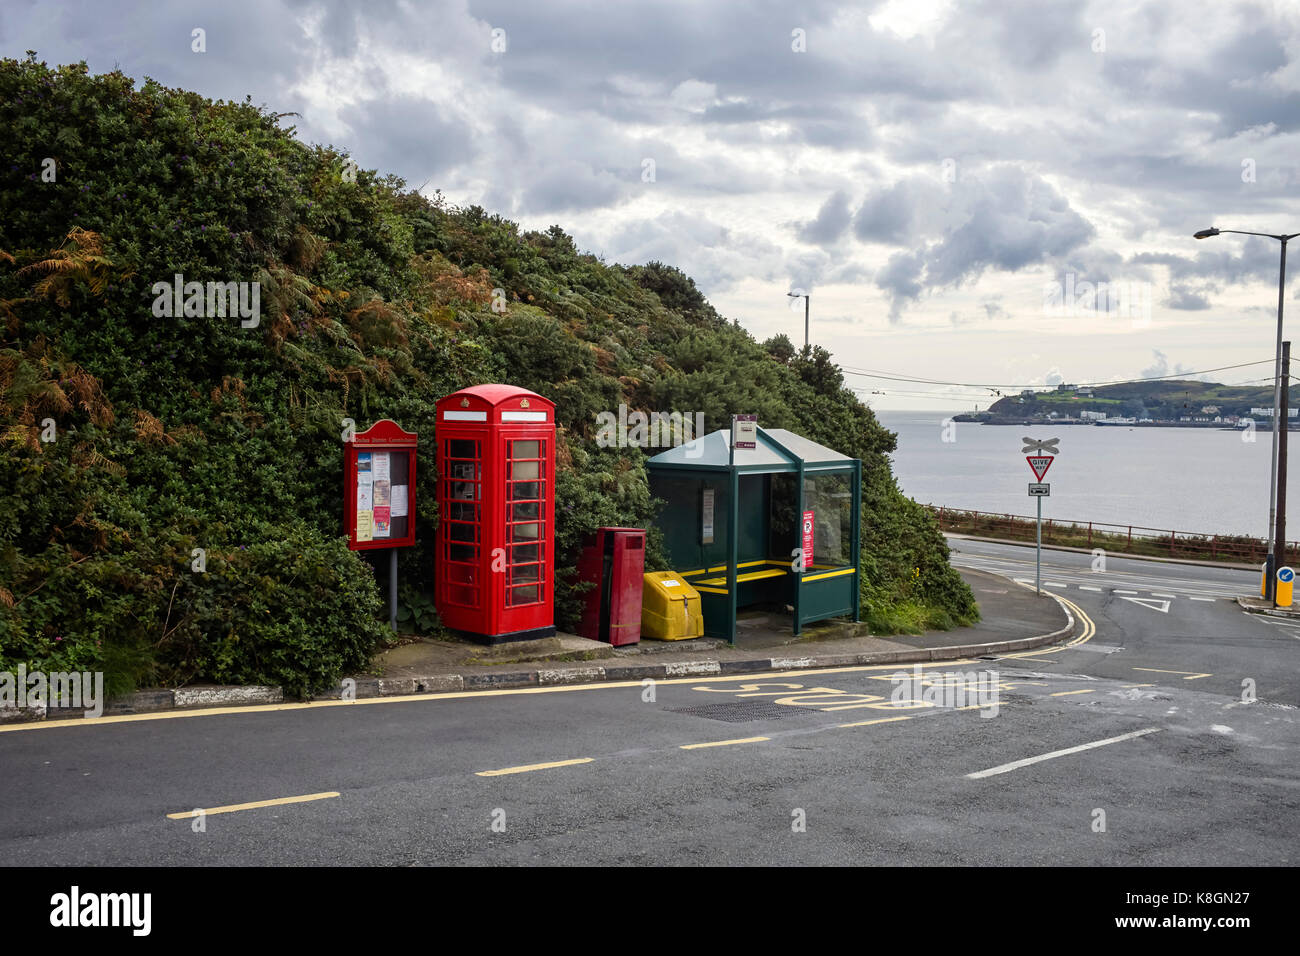 Red phone box and bus stop at Port Jack, Onchan, Isle of Man - Stock Image